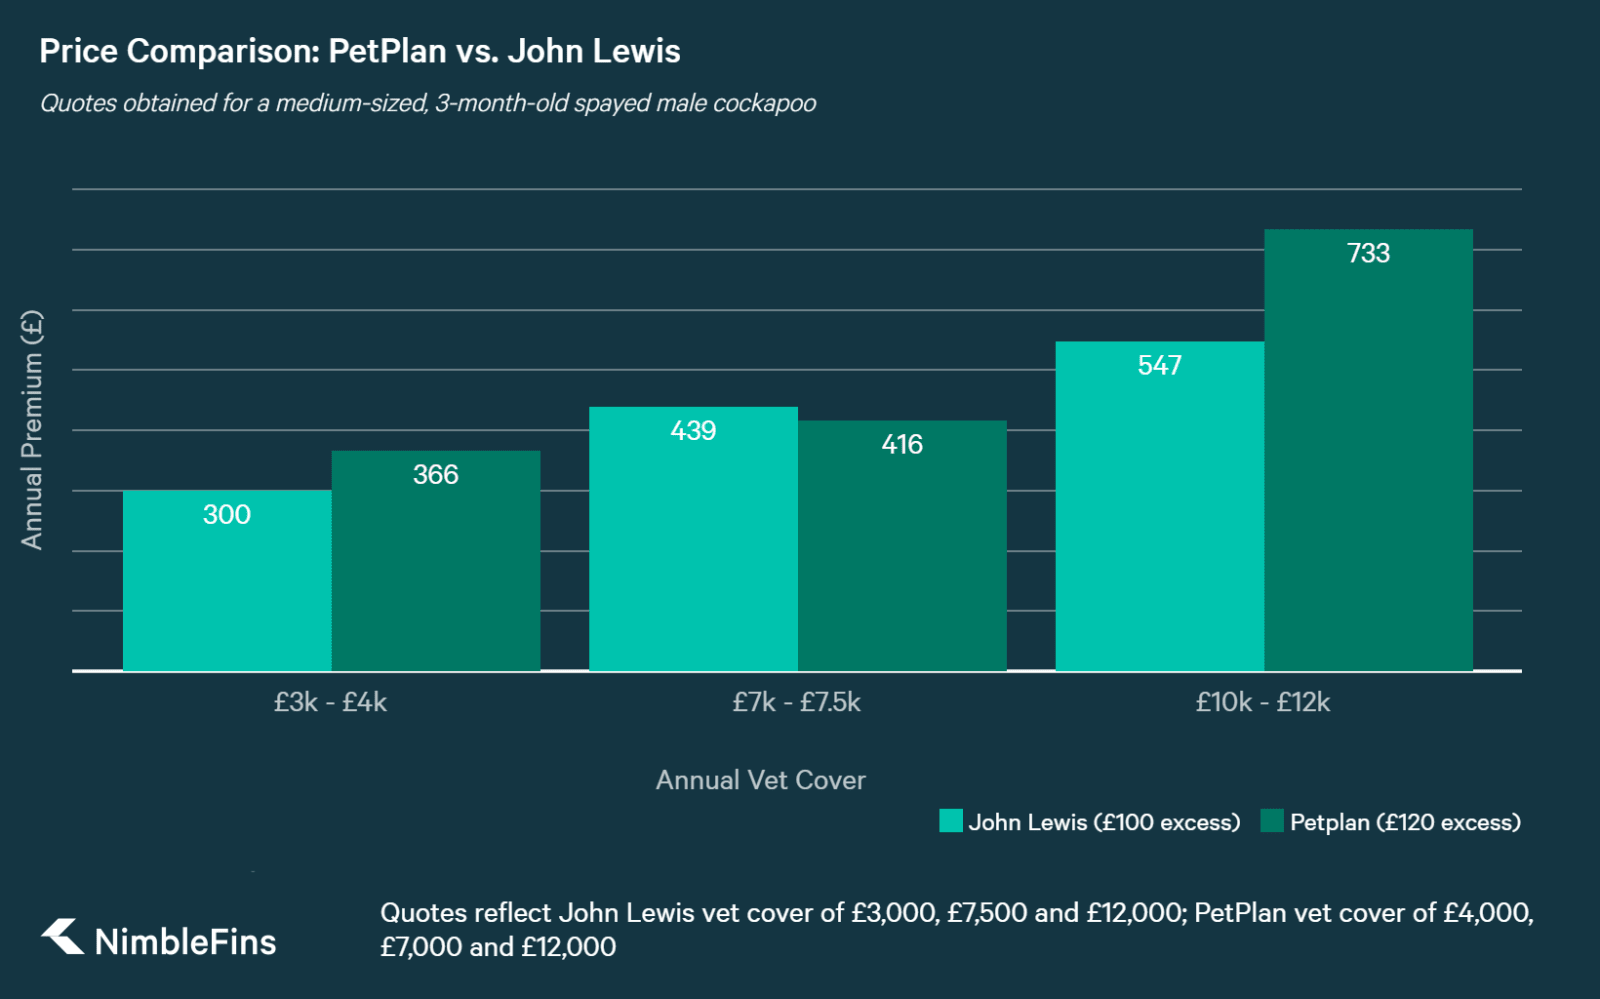 chart showing comparison of john lewis and petplan quotes